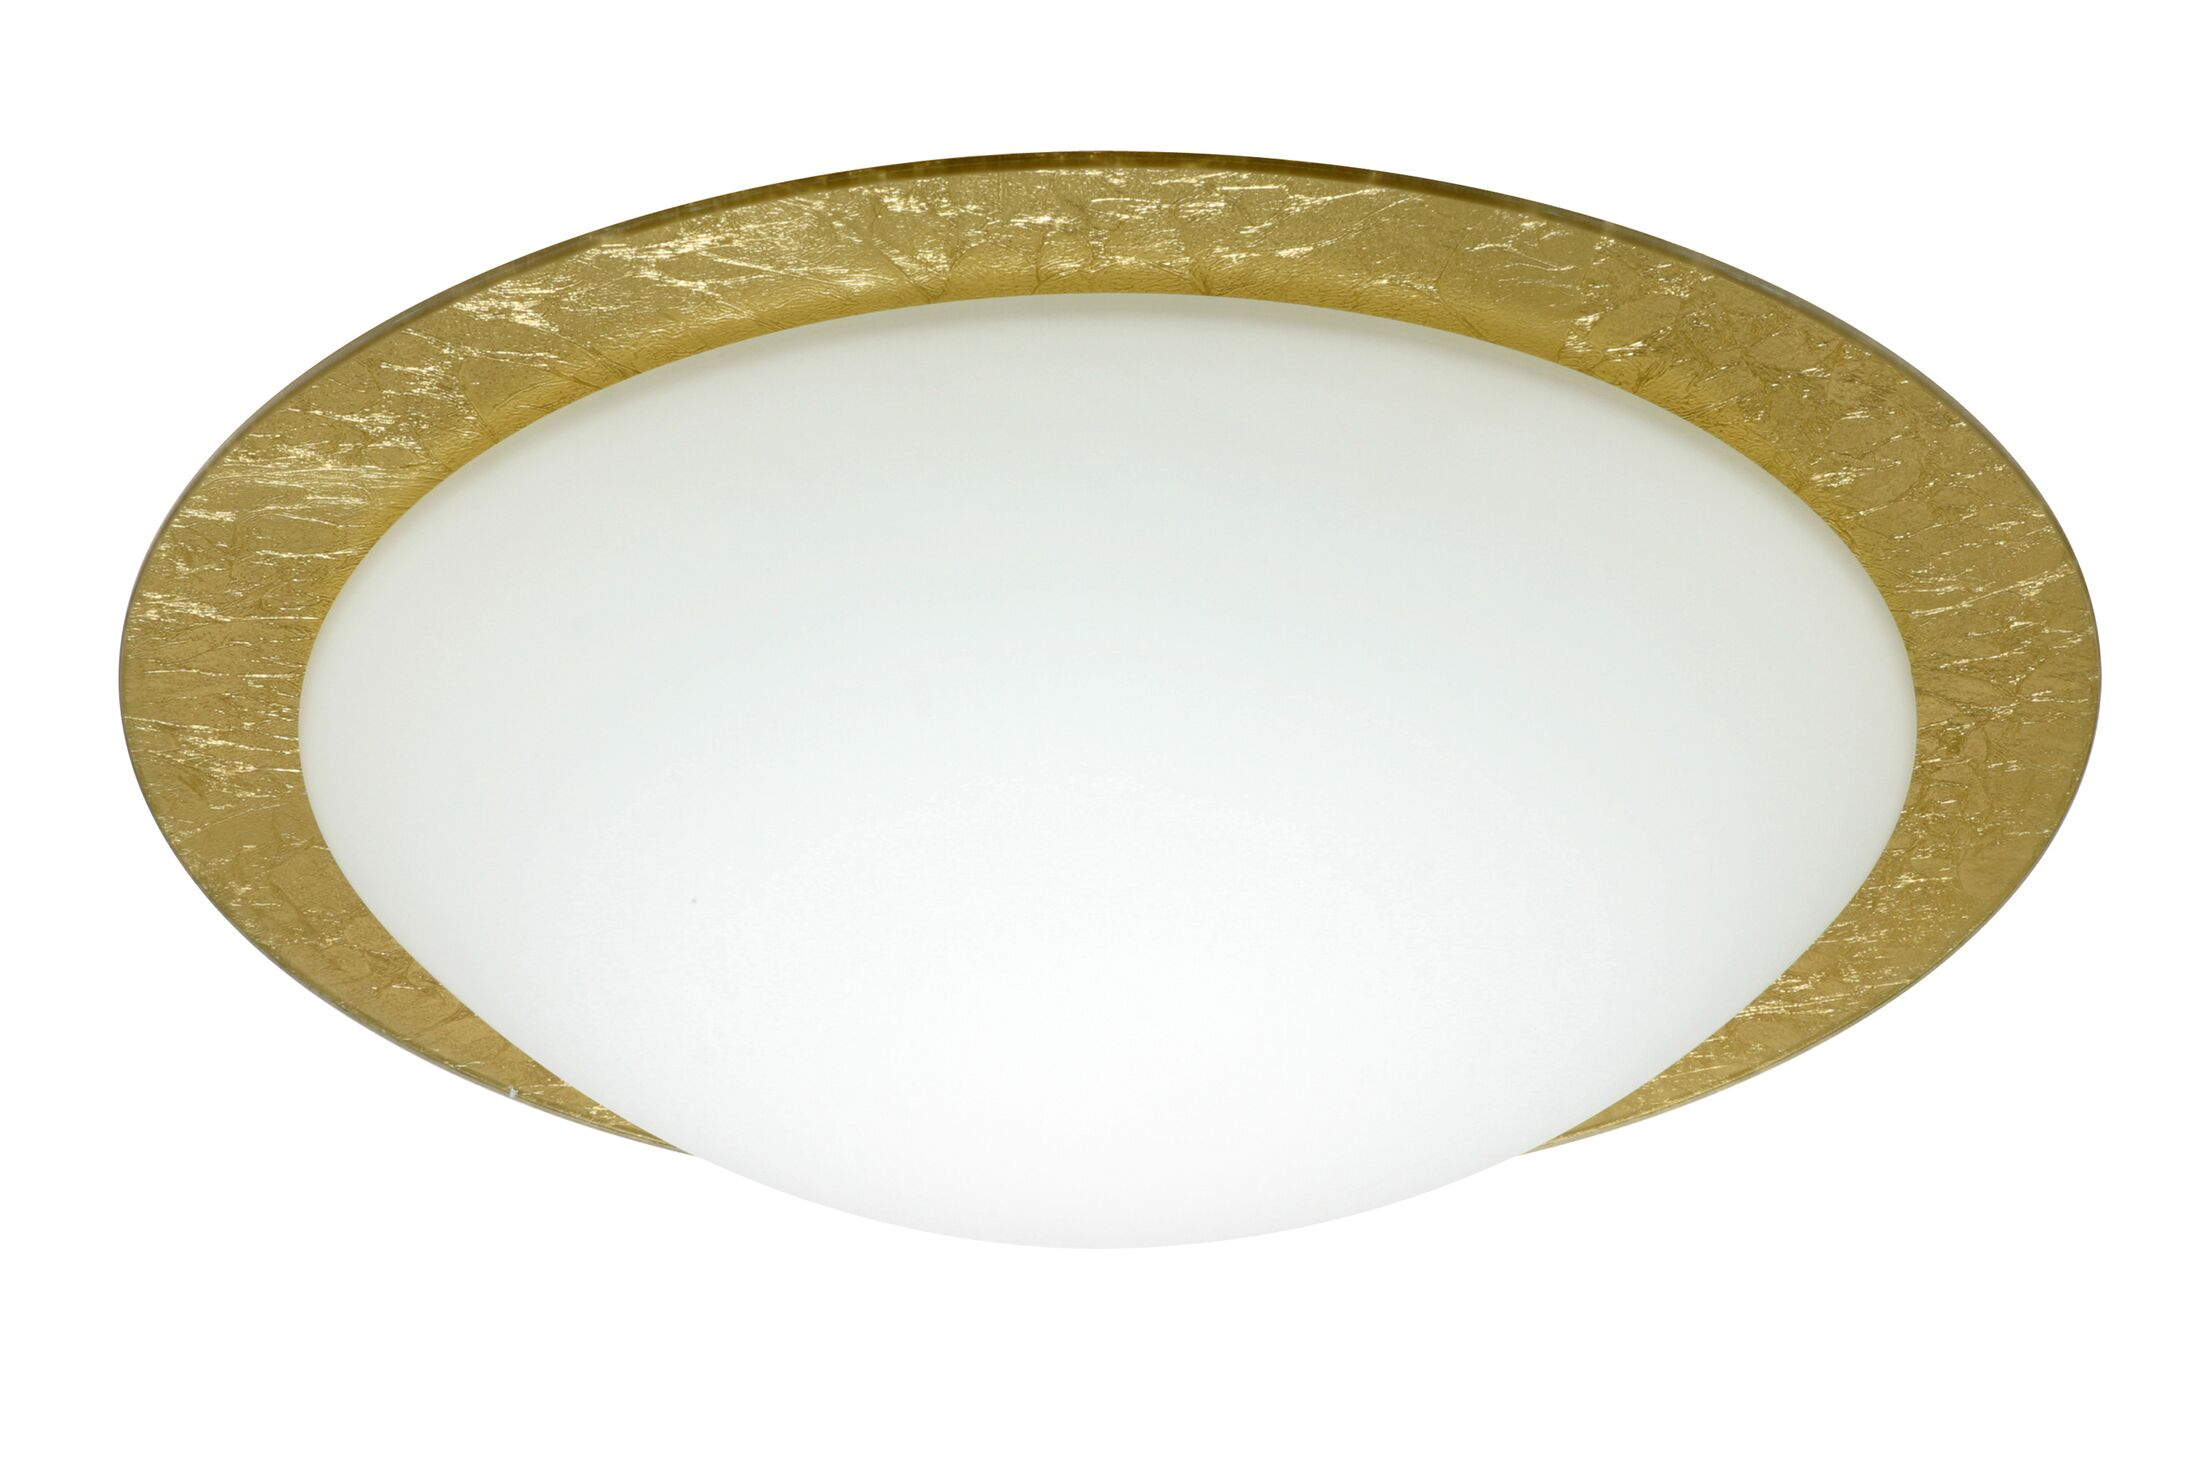 Besa Flush Mount Glass Shade: Gold Foil, Size: 5.25